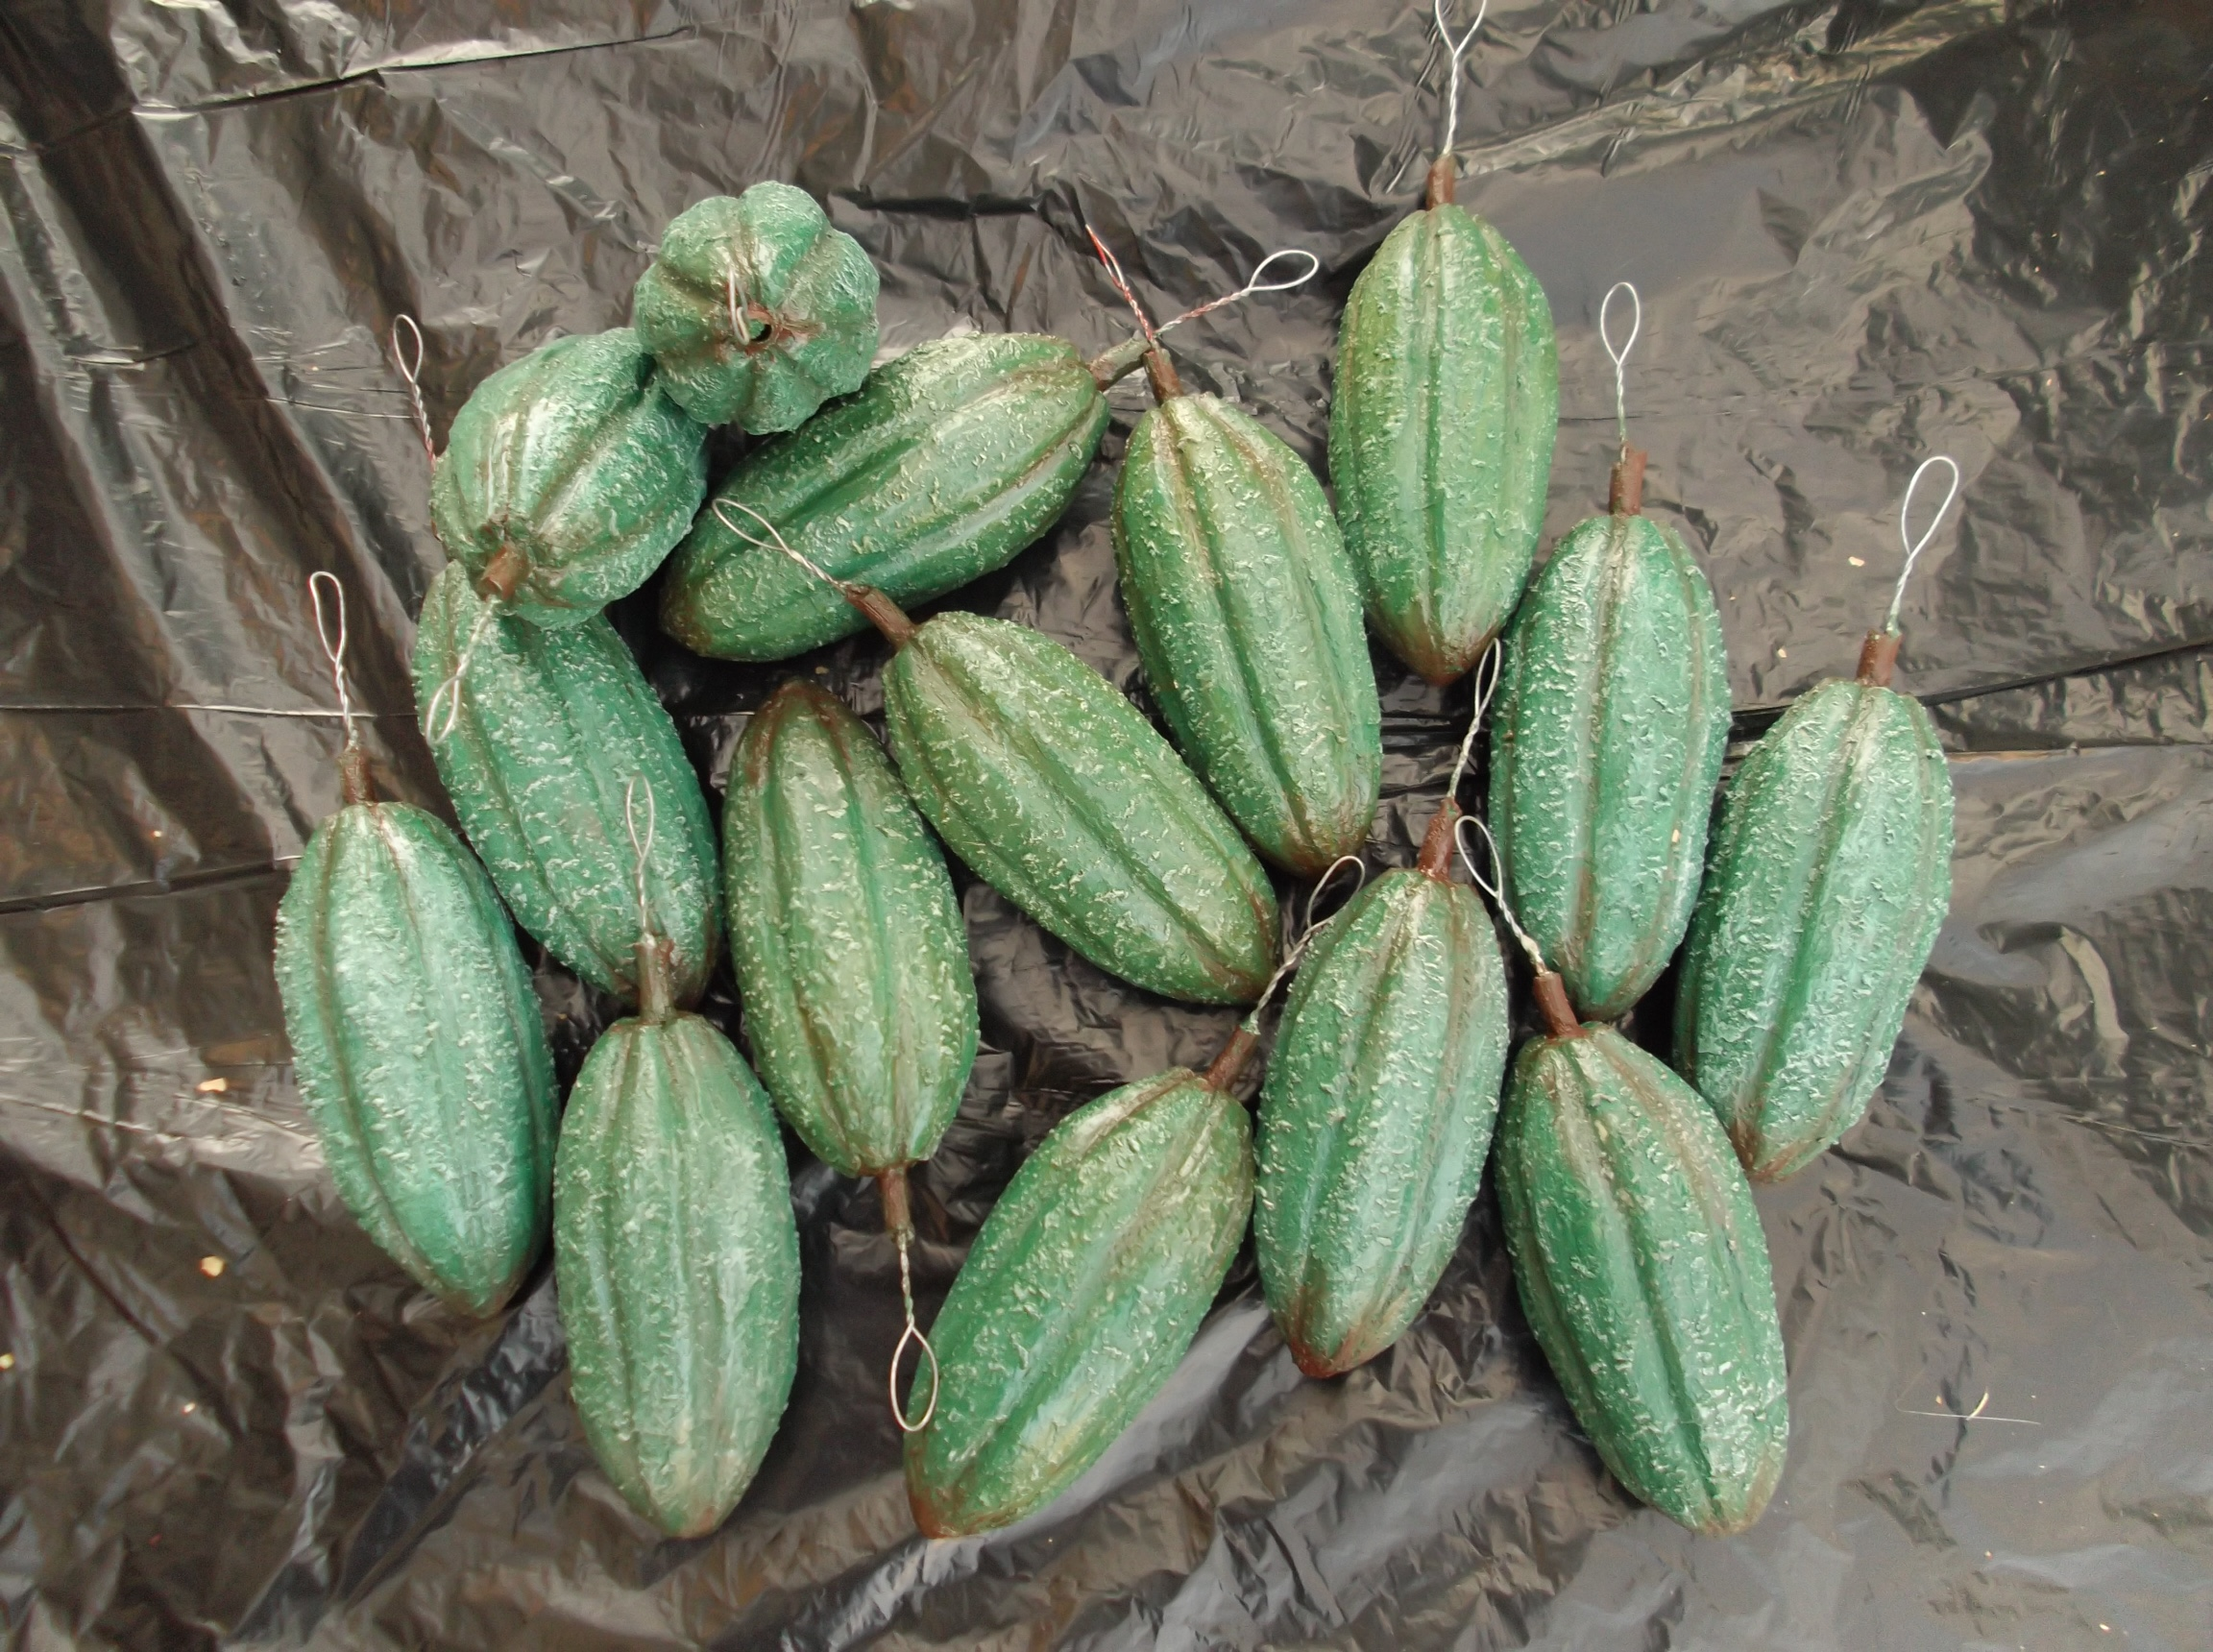 Green coco pods